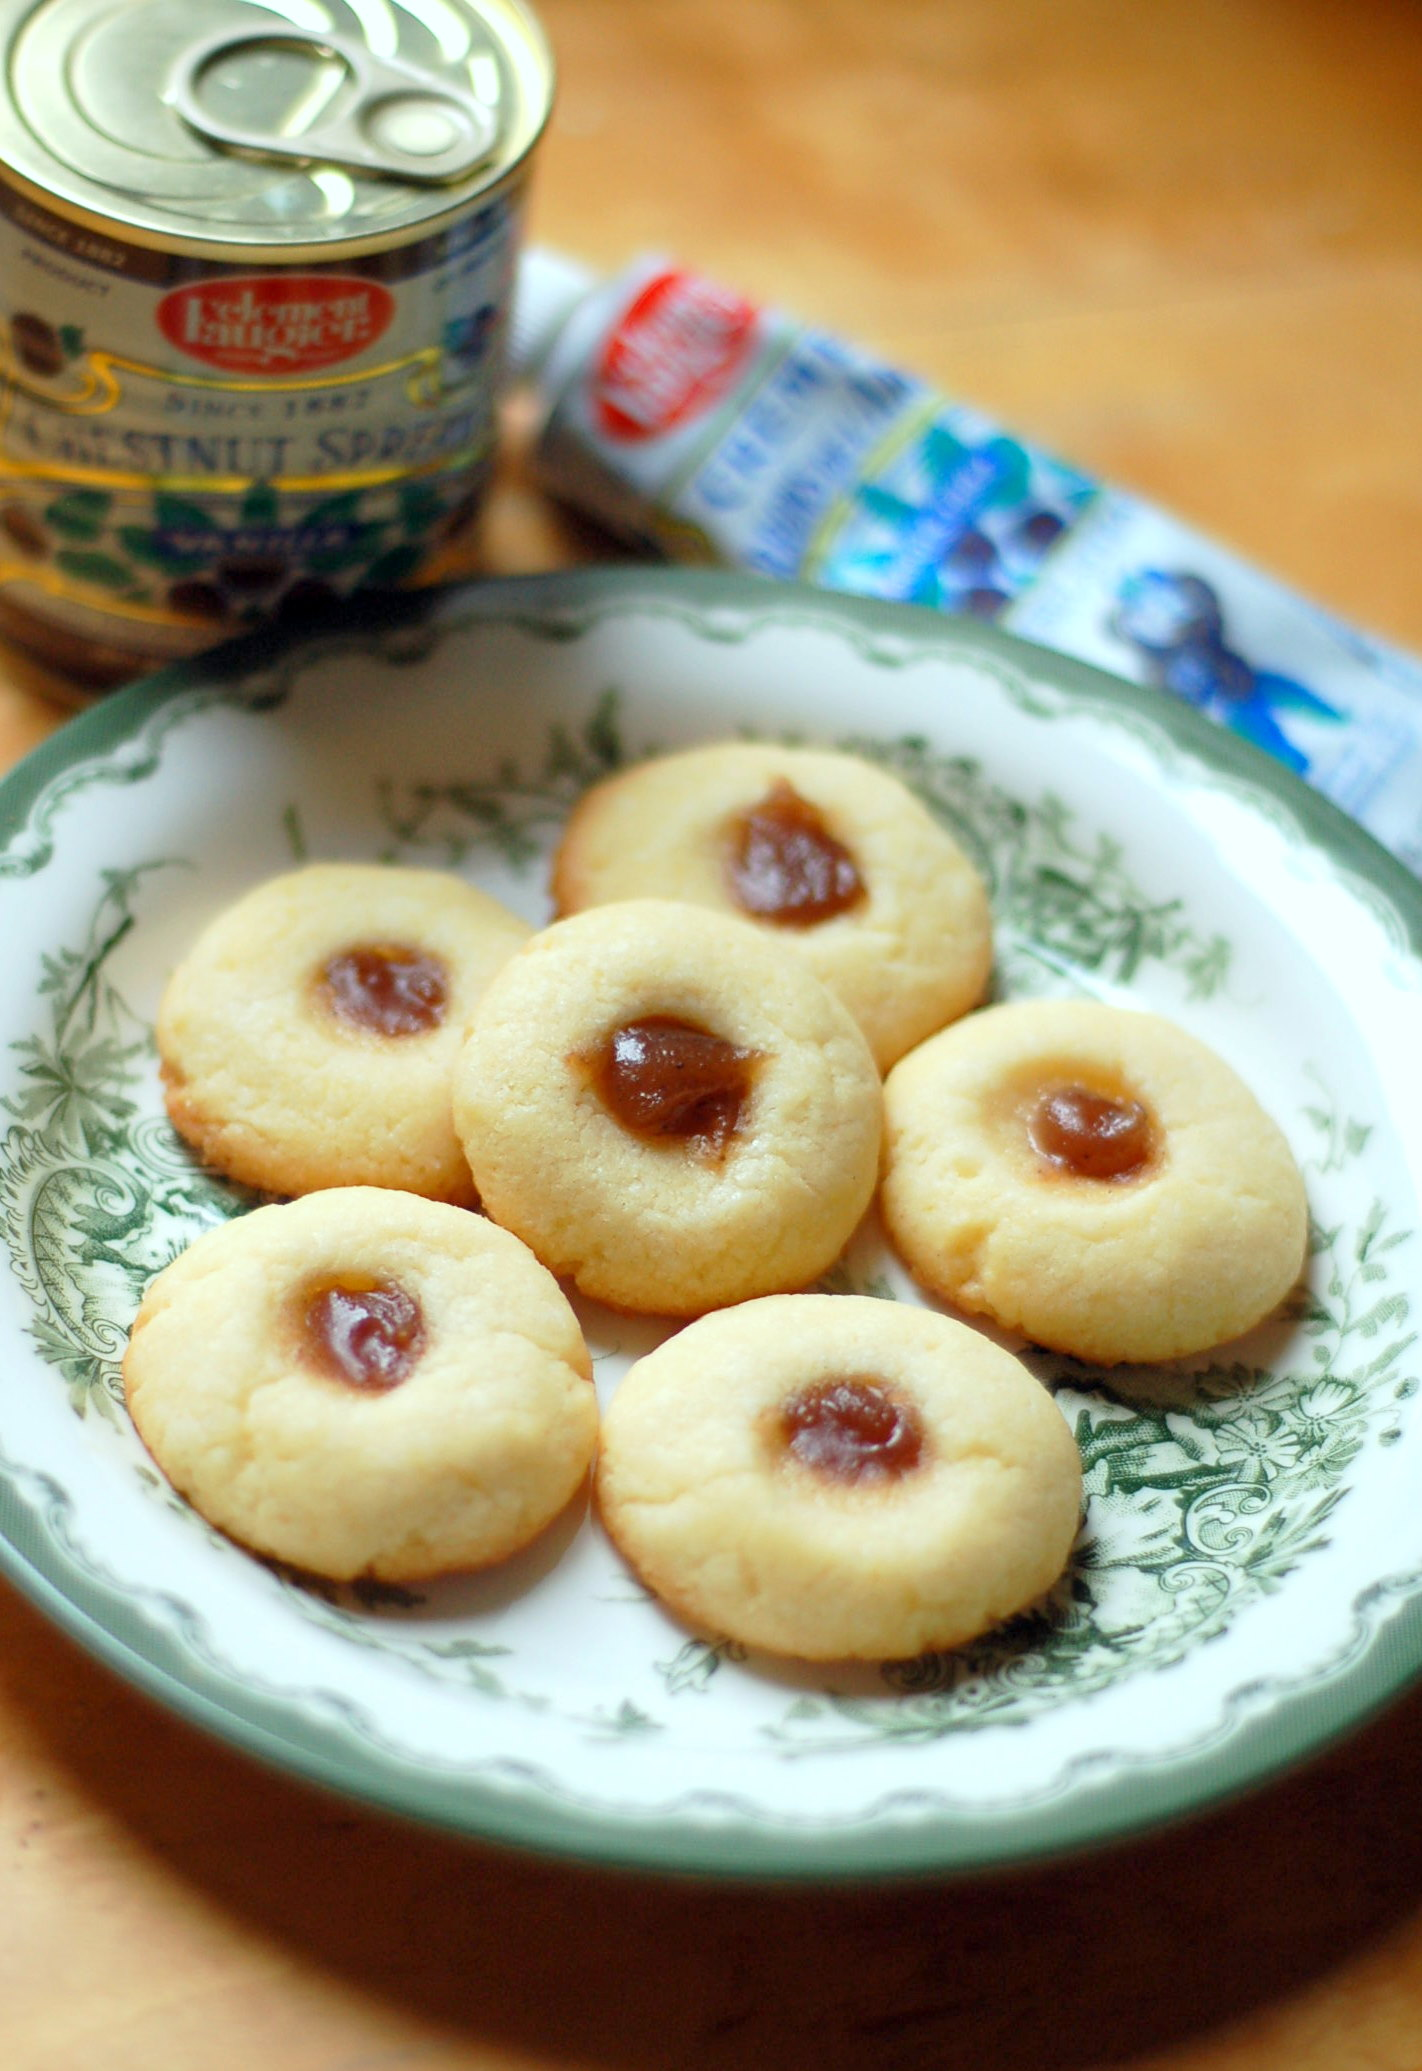 chestnut spread cookies